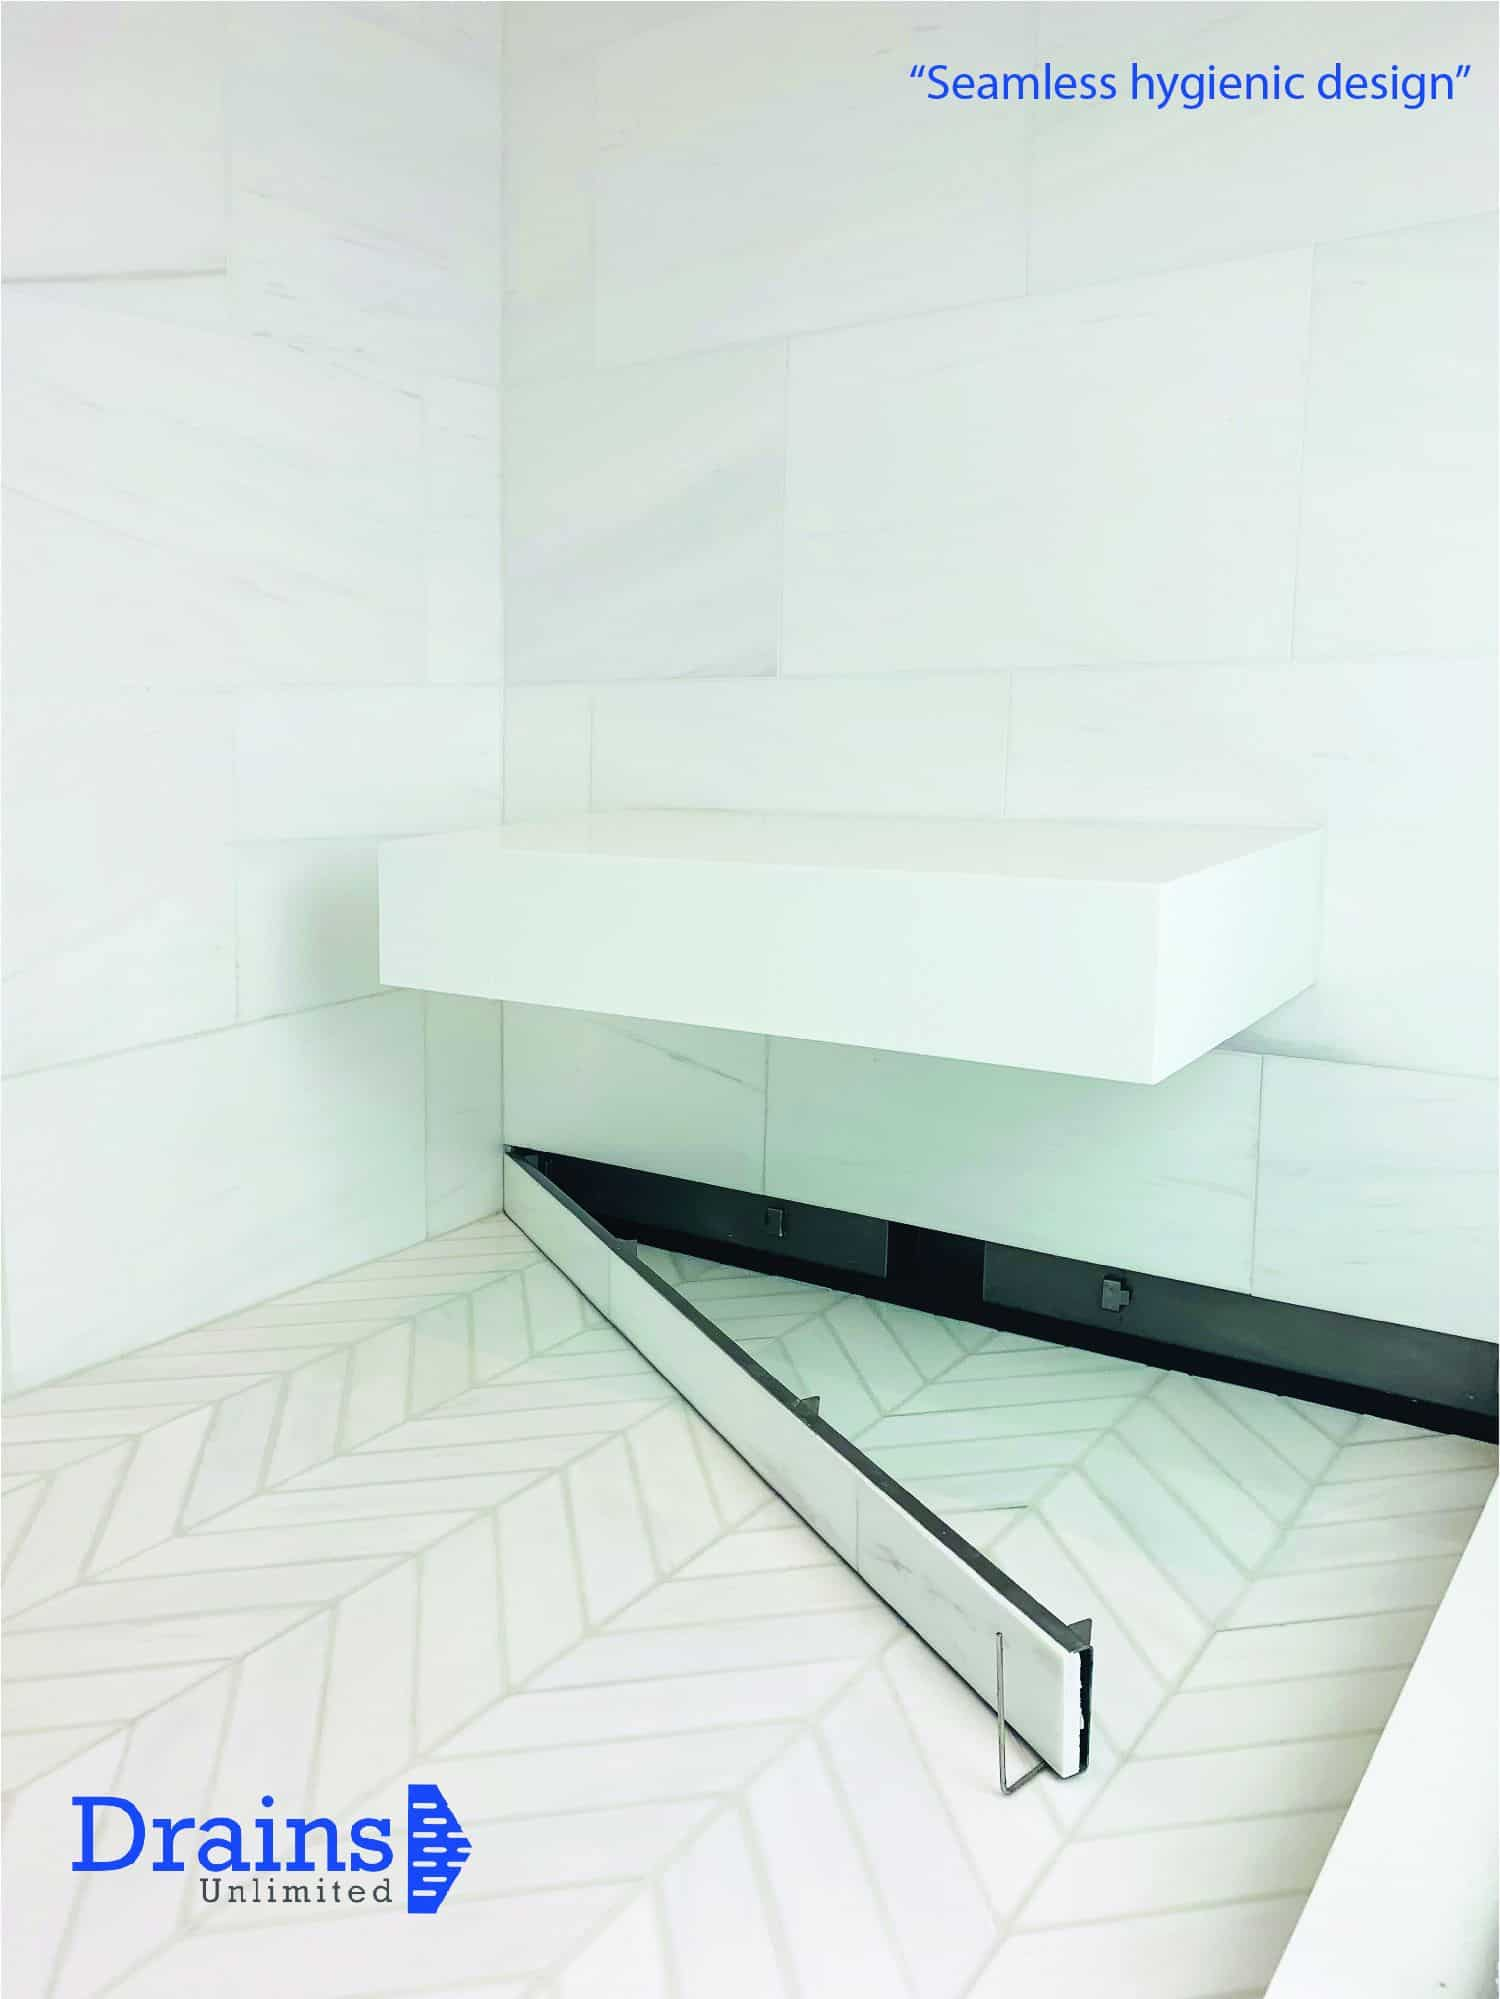 KBIS 2020 winners - DUW Series – Wall Recessed Linear Floor Drain by Drains Unlimited